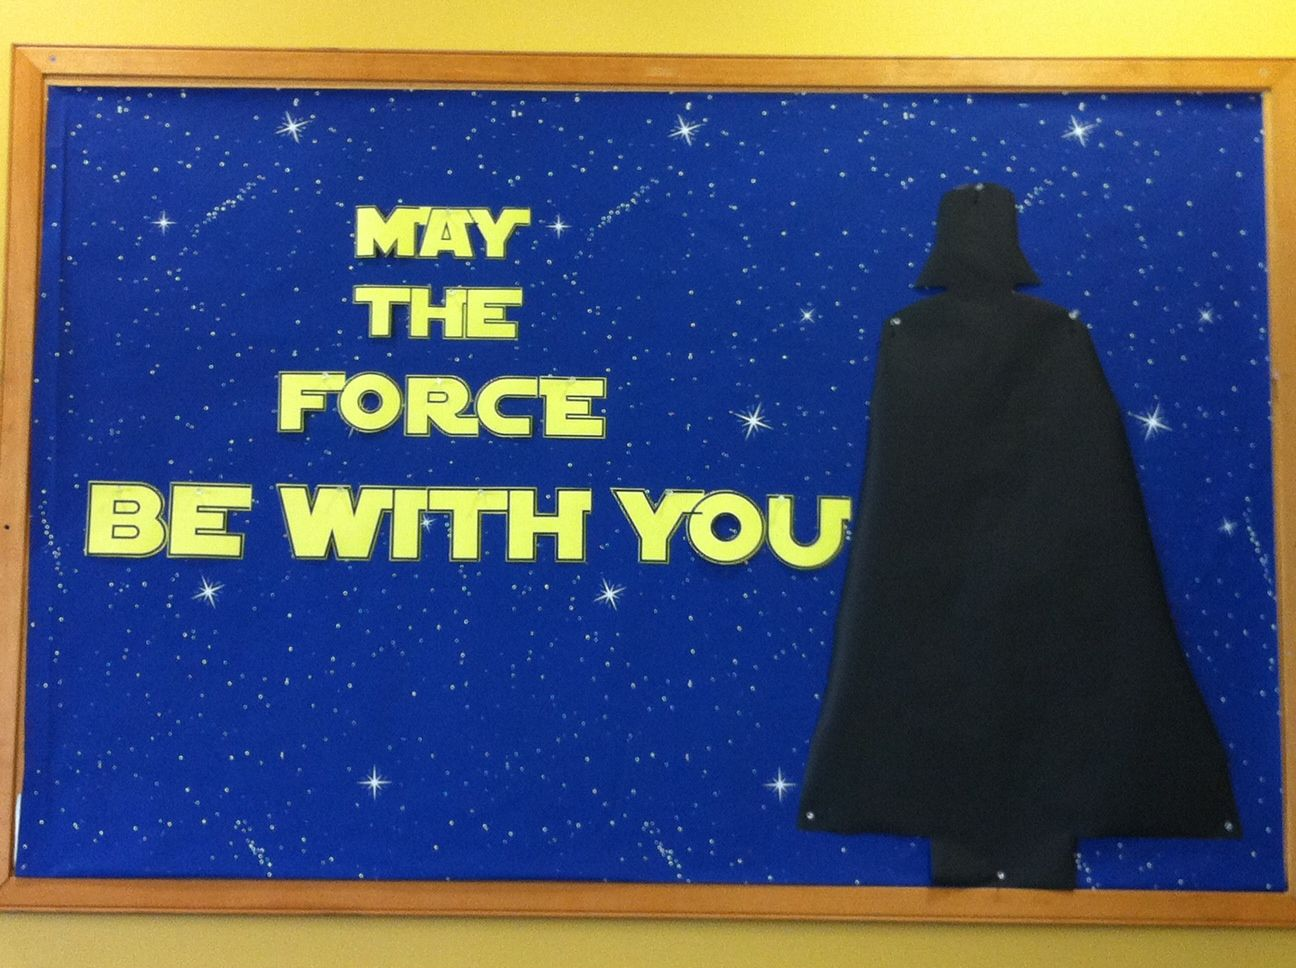 Be with may the you force